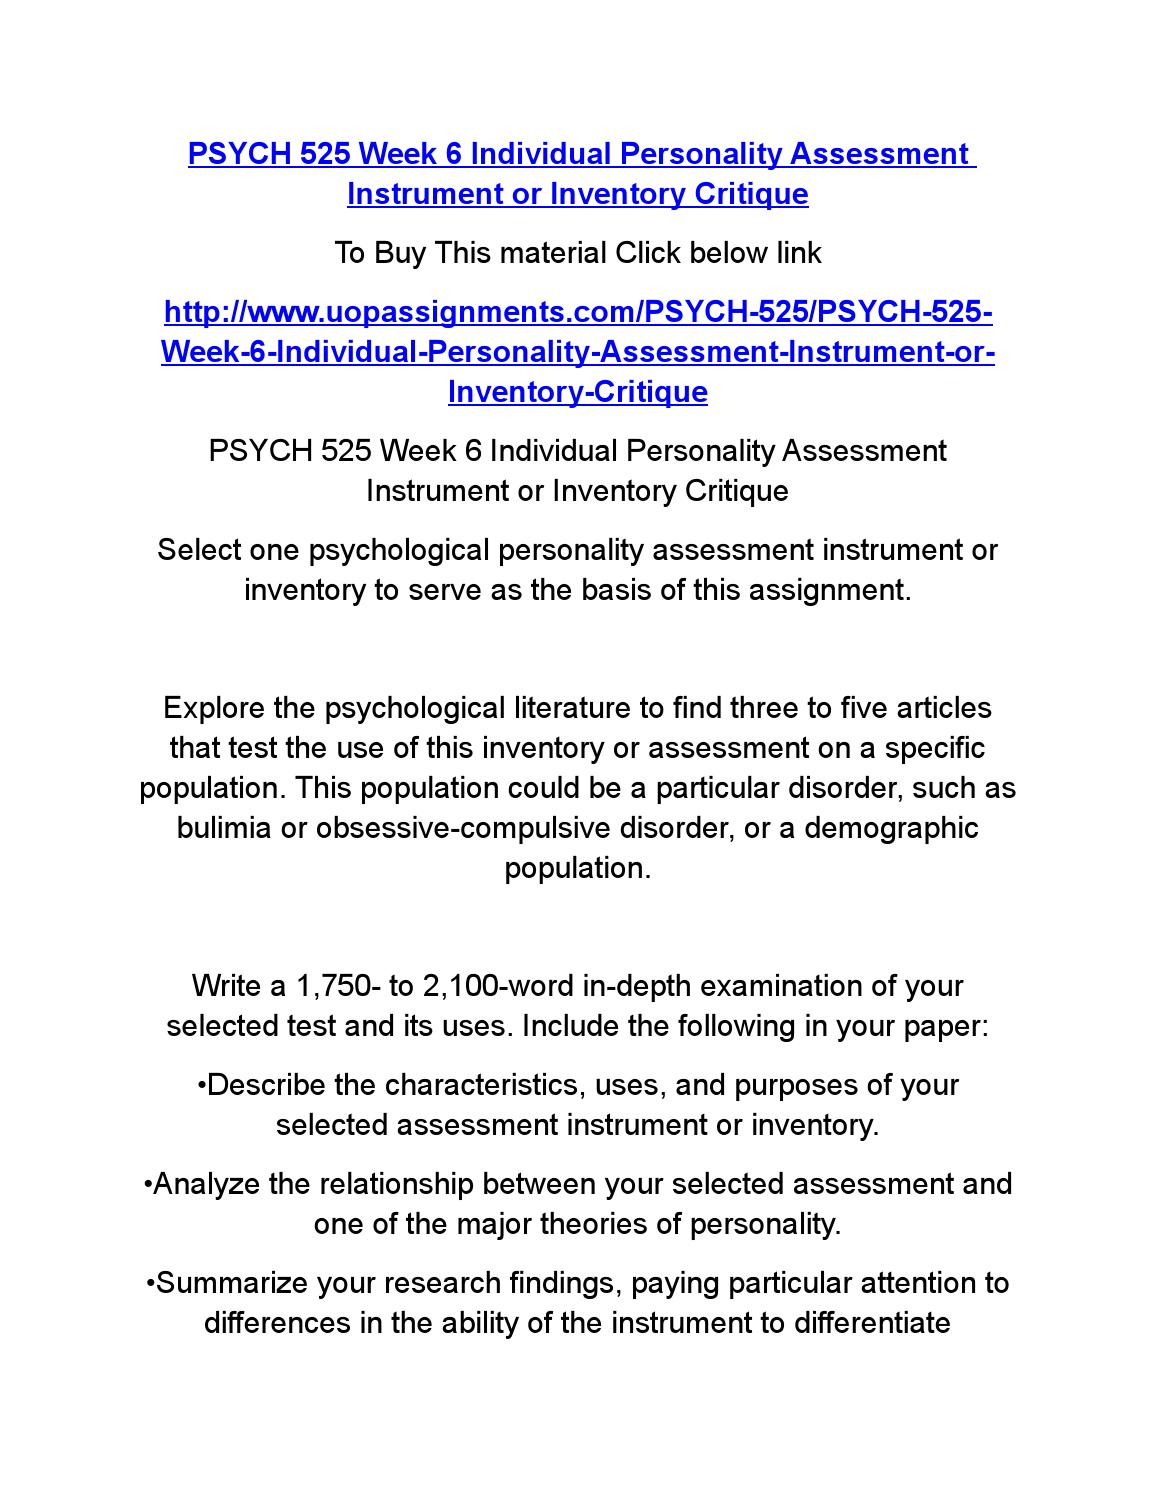 Understanding the Self - Theories of Personality